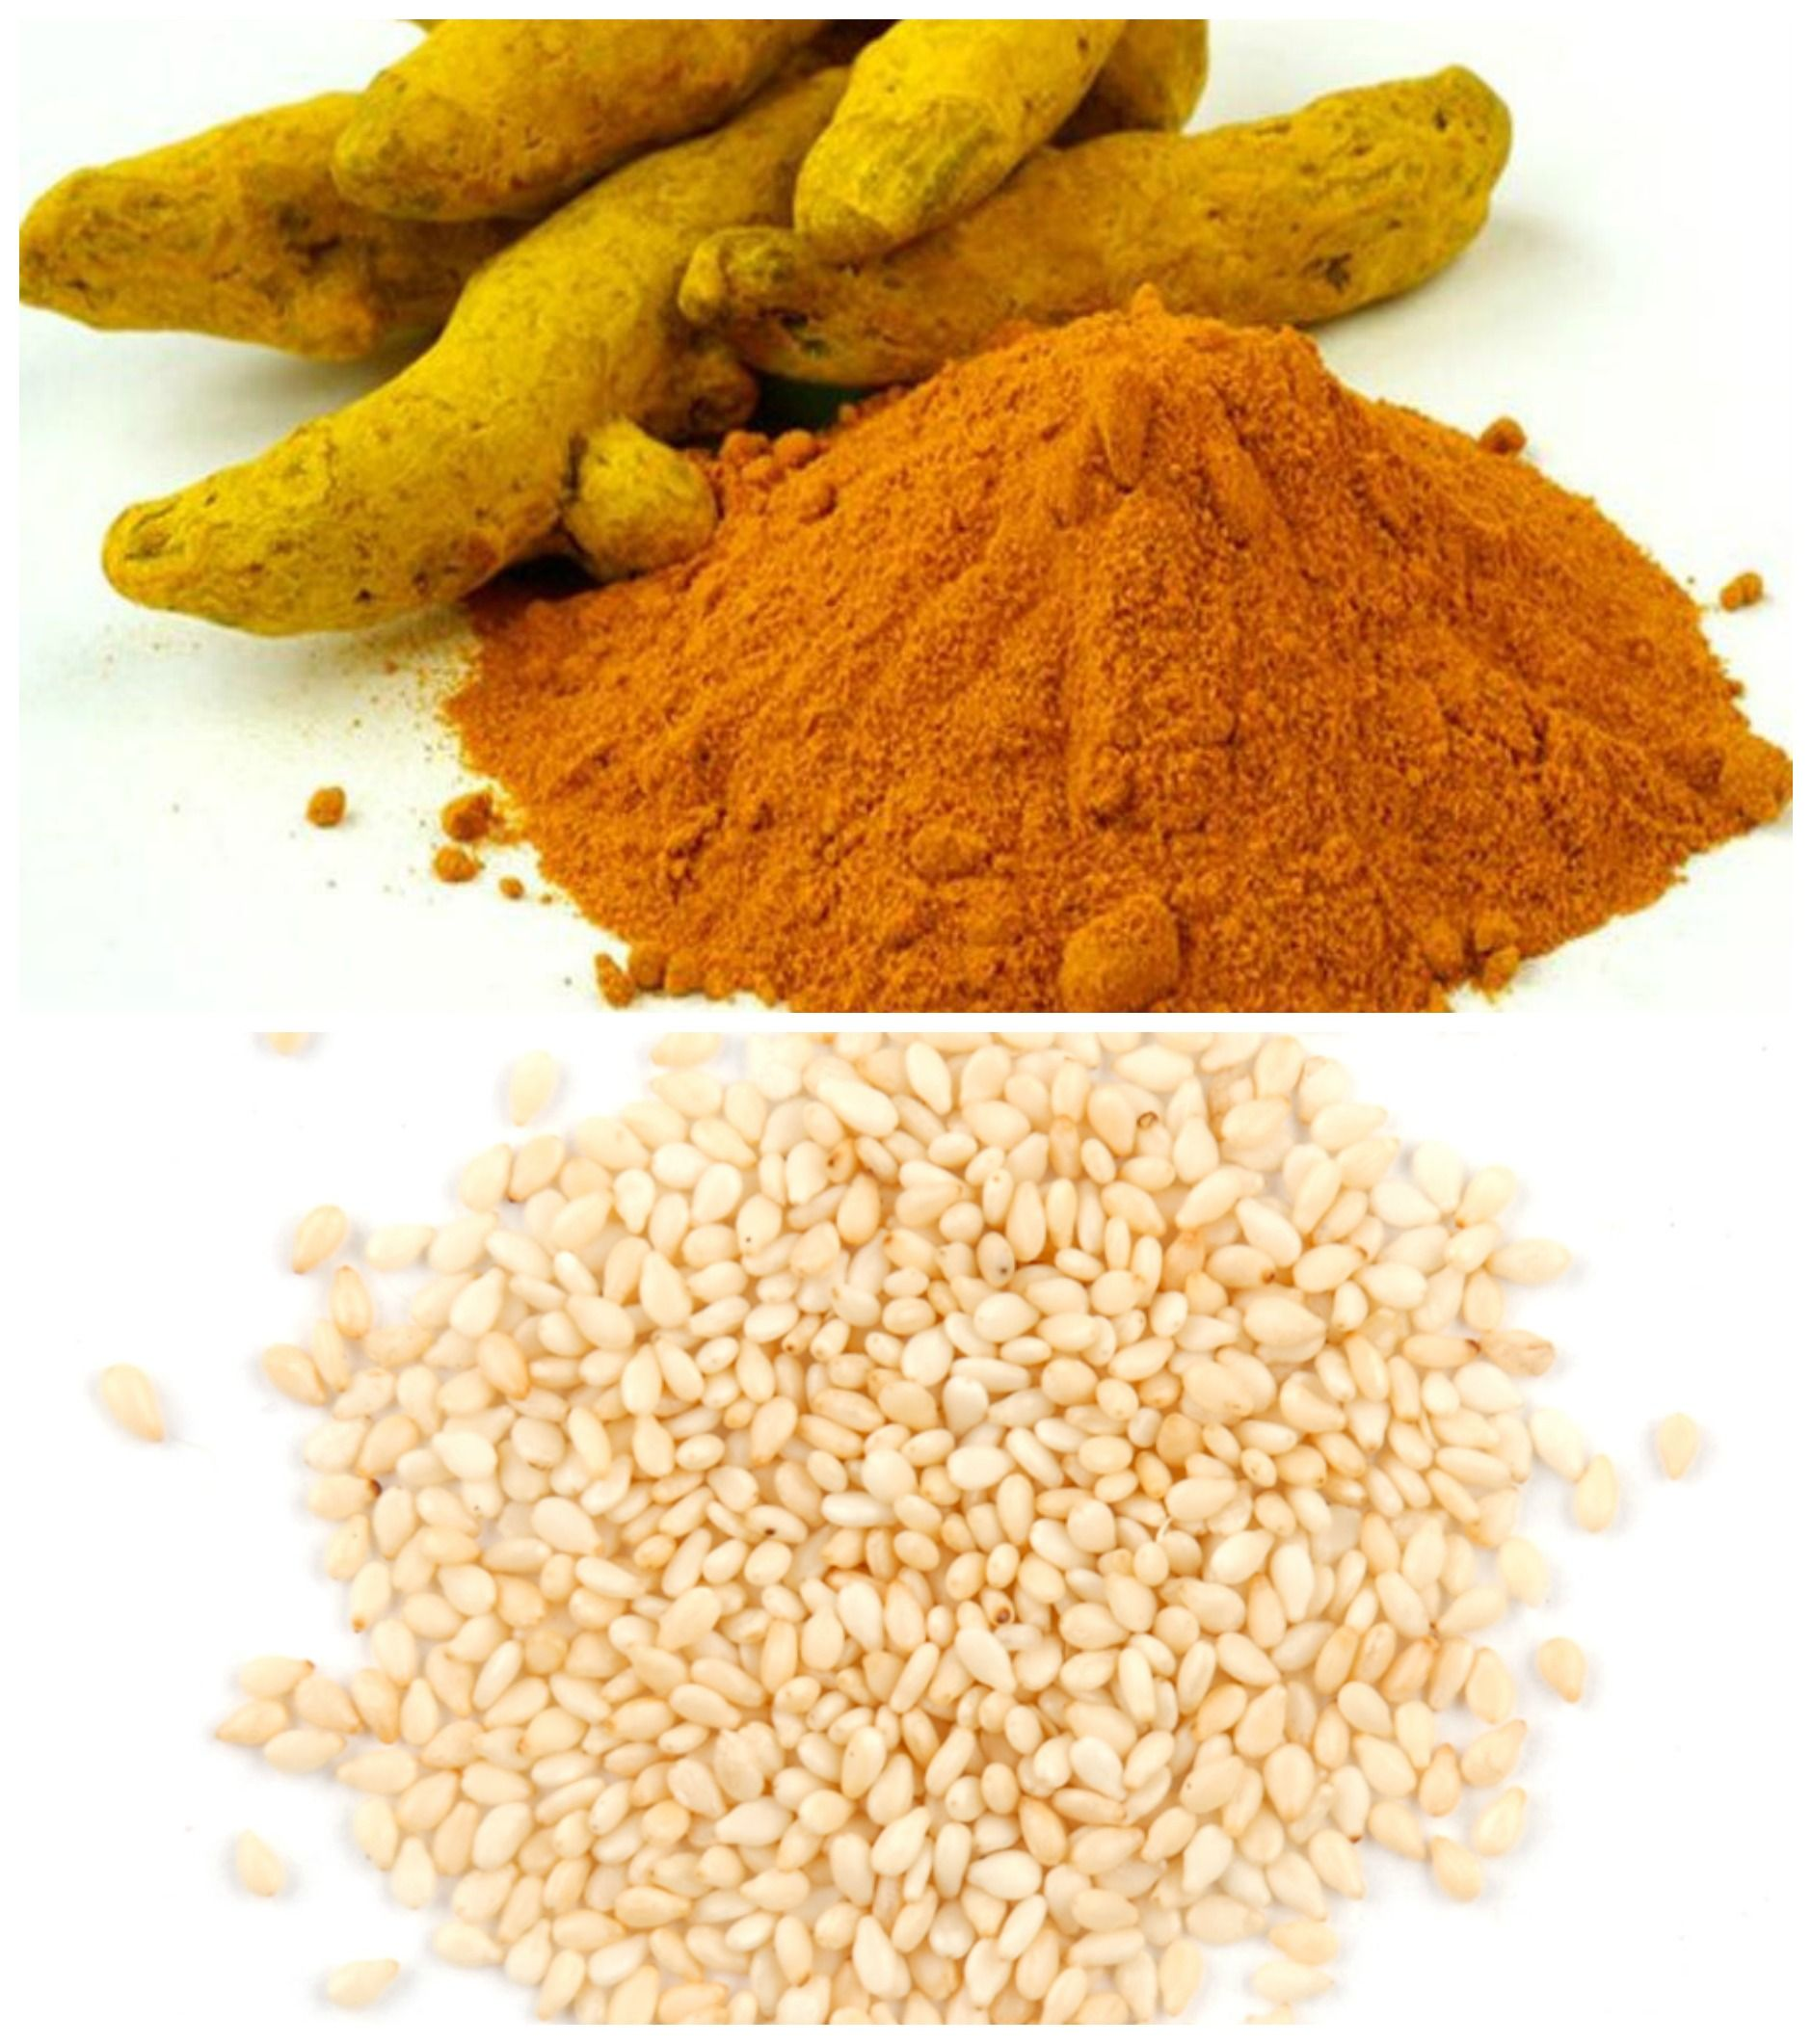 Grind some Sesame seeds & an equal amount of Turmeric